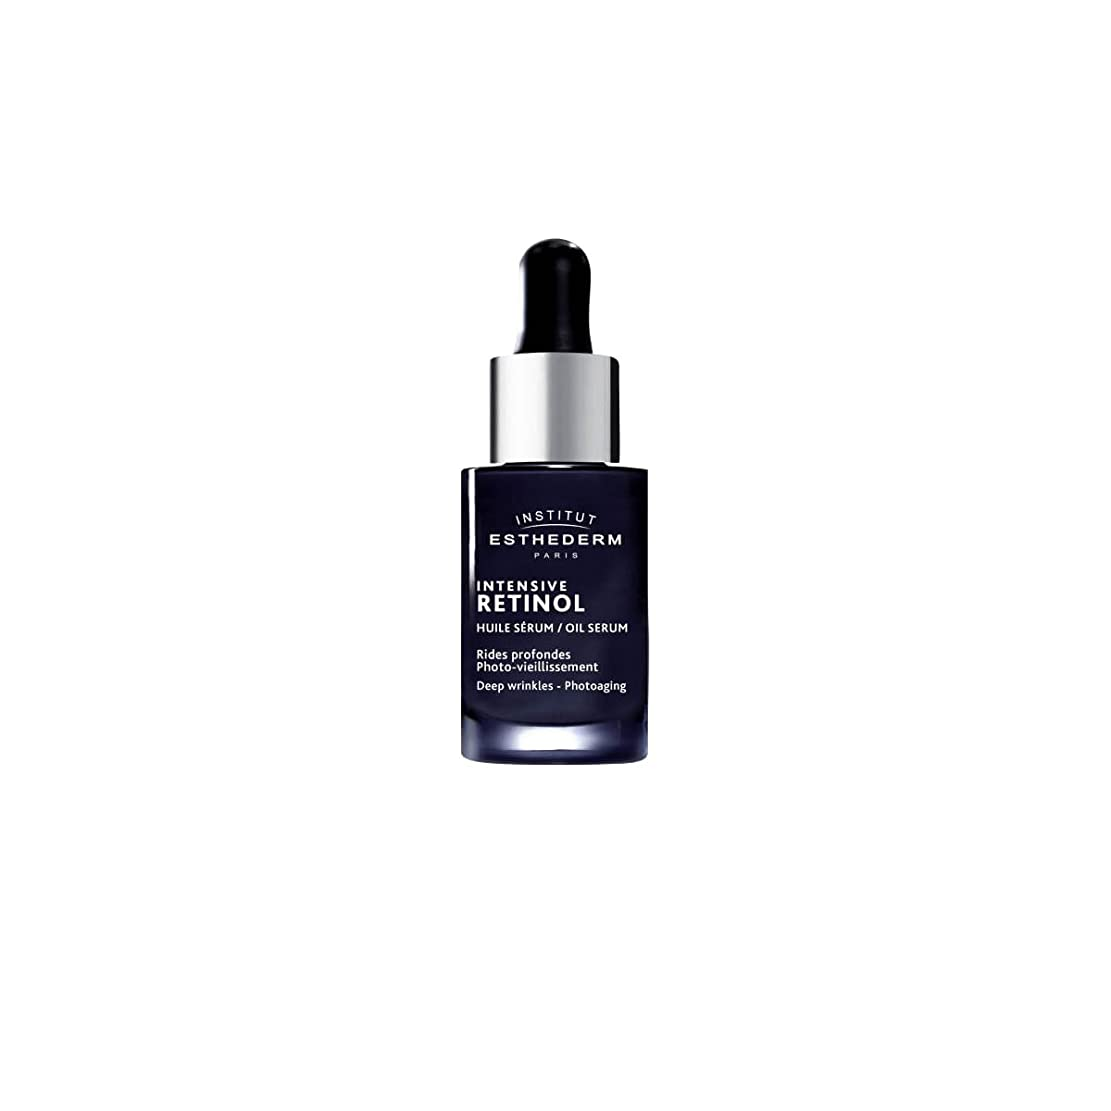 聞く光沢のあるラッカスInstitut Esthederm Intensive Retinol Serum Oil 15ml [並行輸入品]